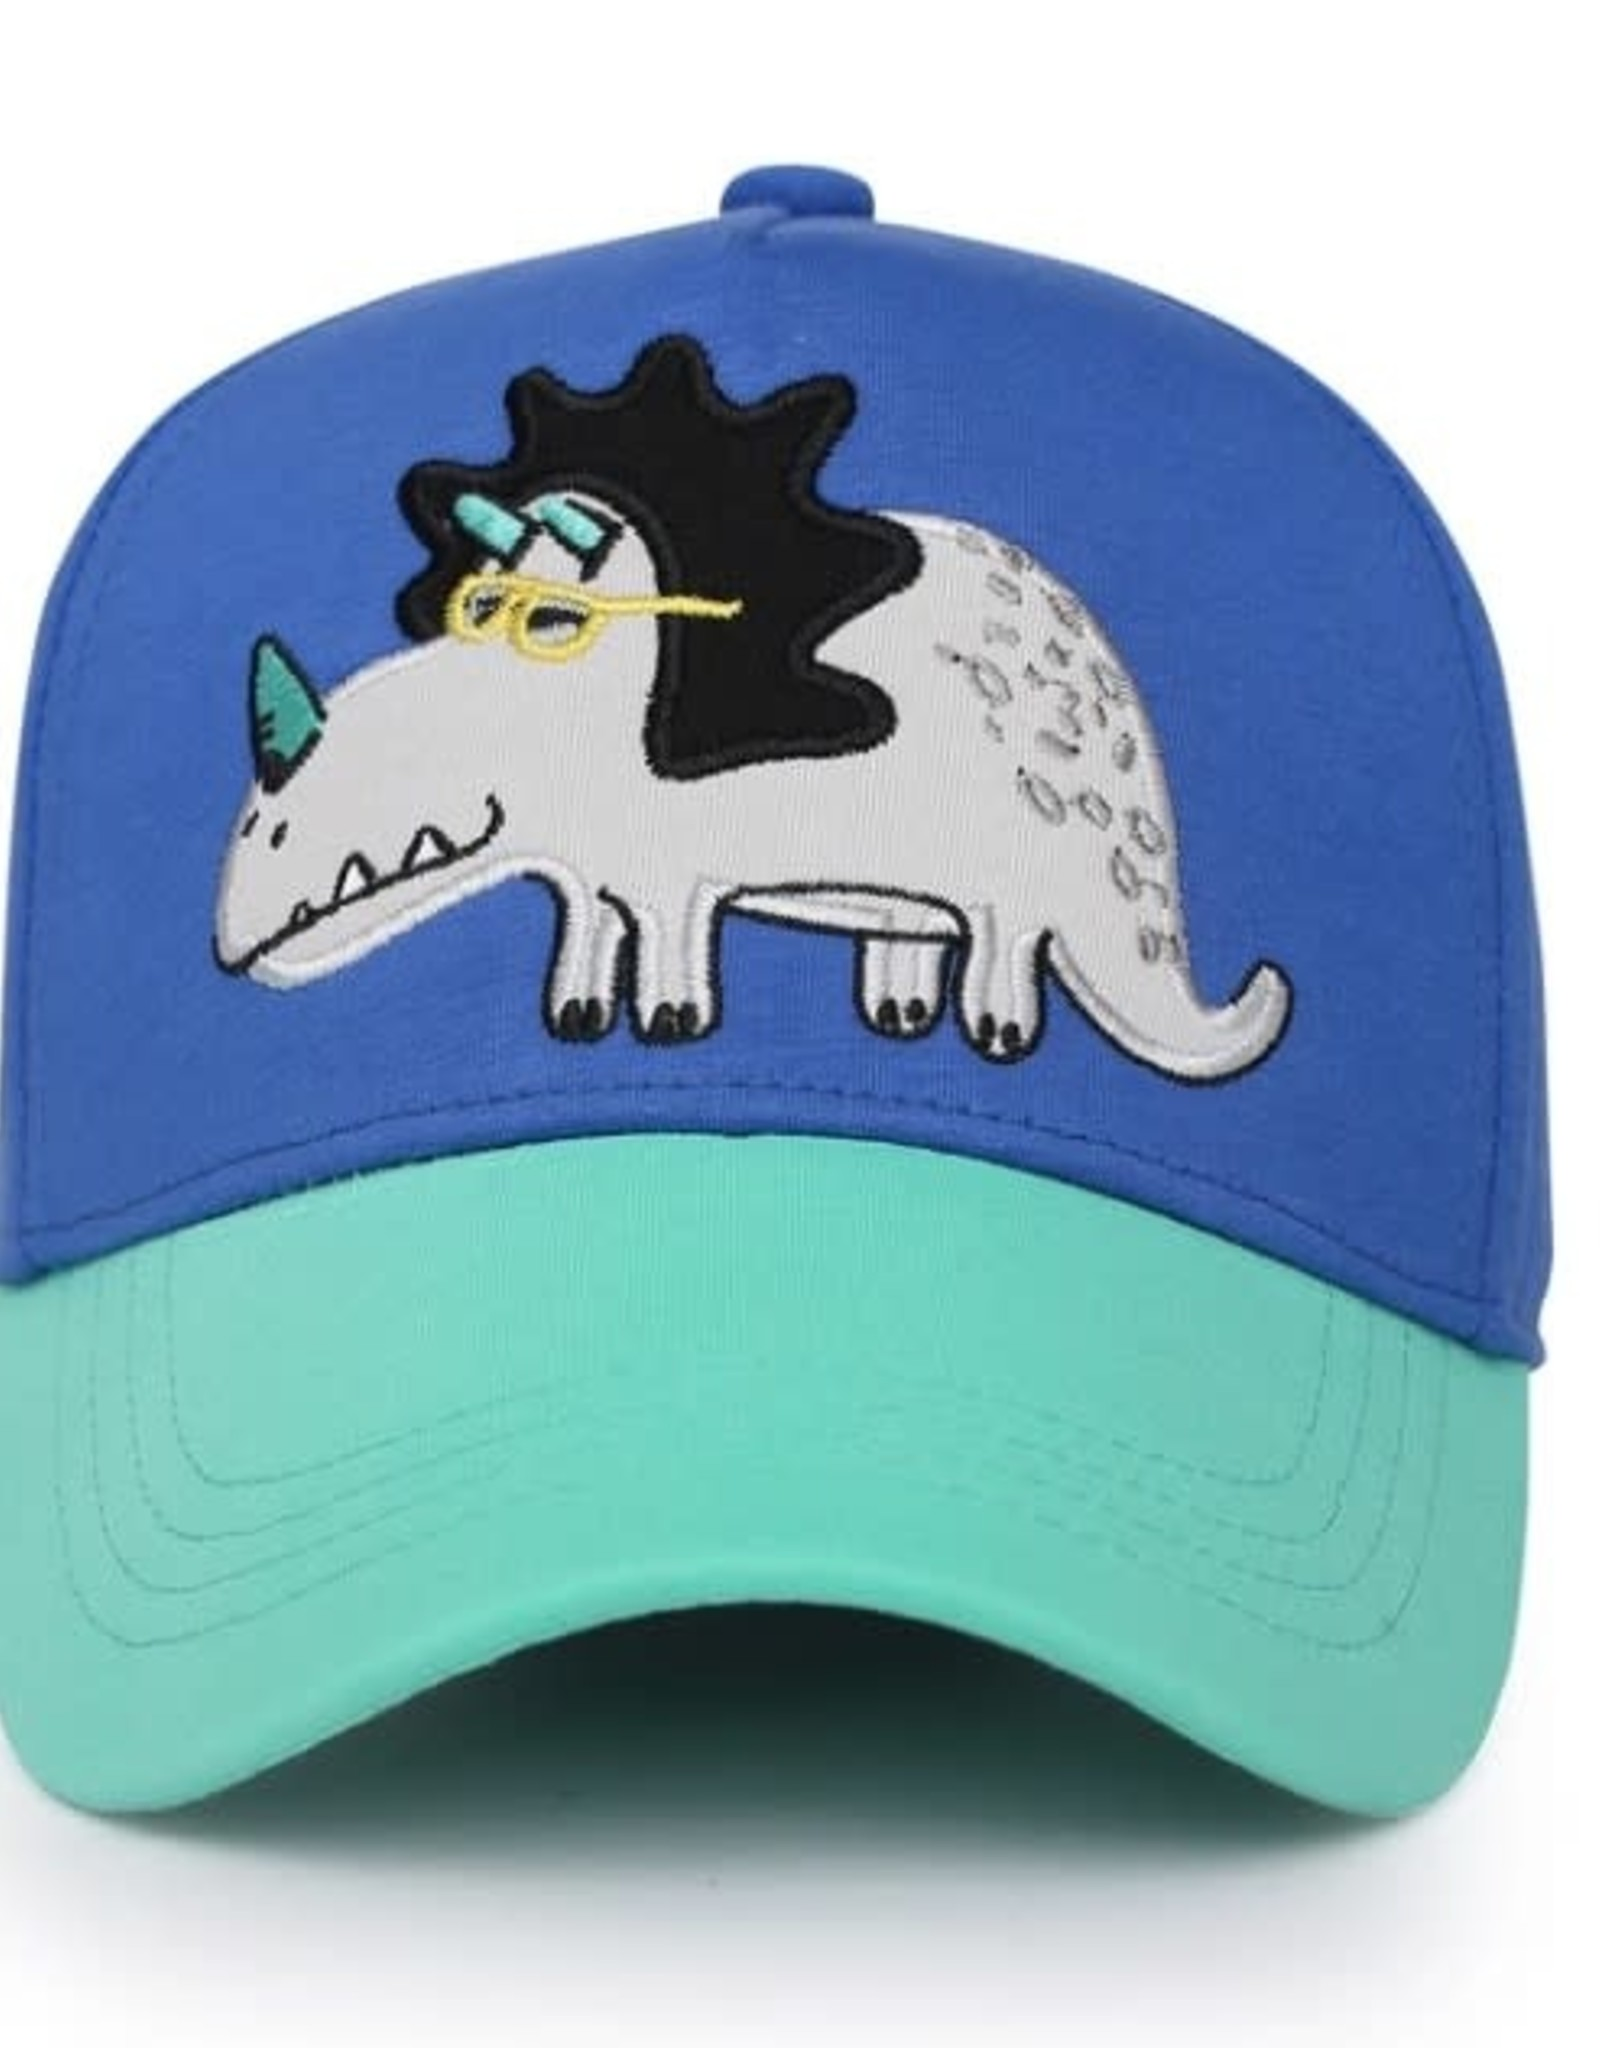 FlapJackKids Kids Ball Cap - Dino - Medium